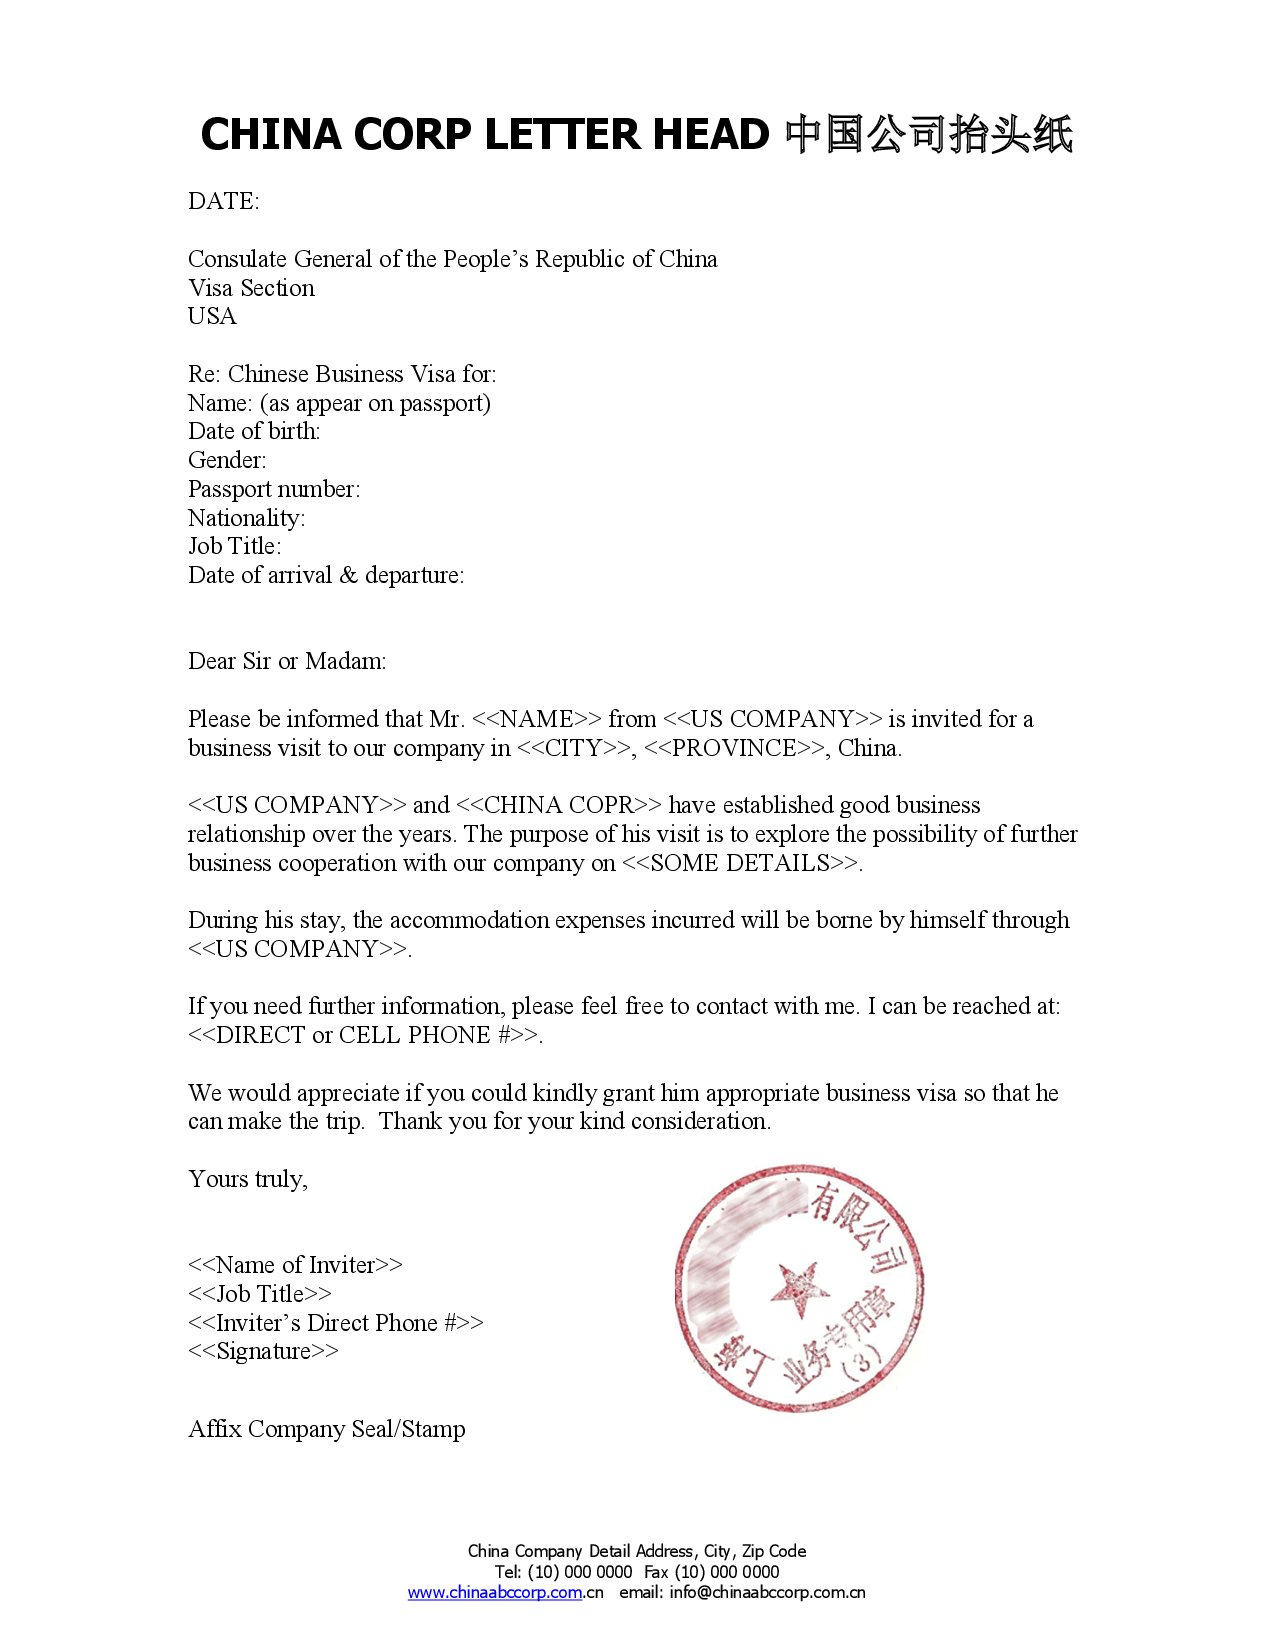 Format Invitation Letter For Business Visa To China LetterVisa – Invitation Letter